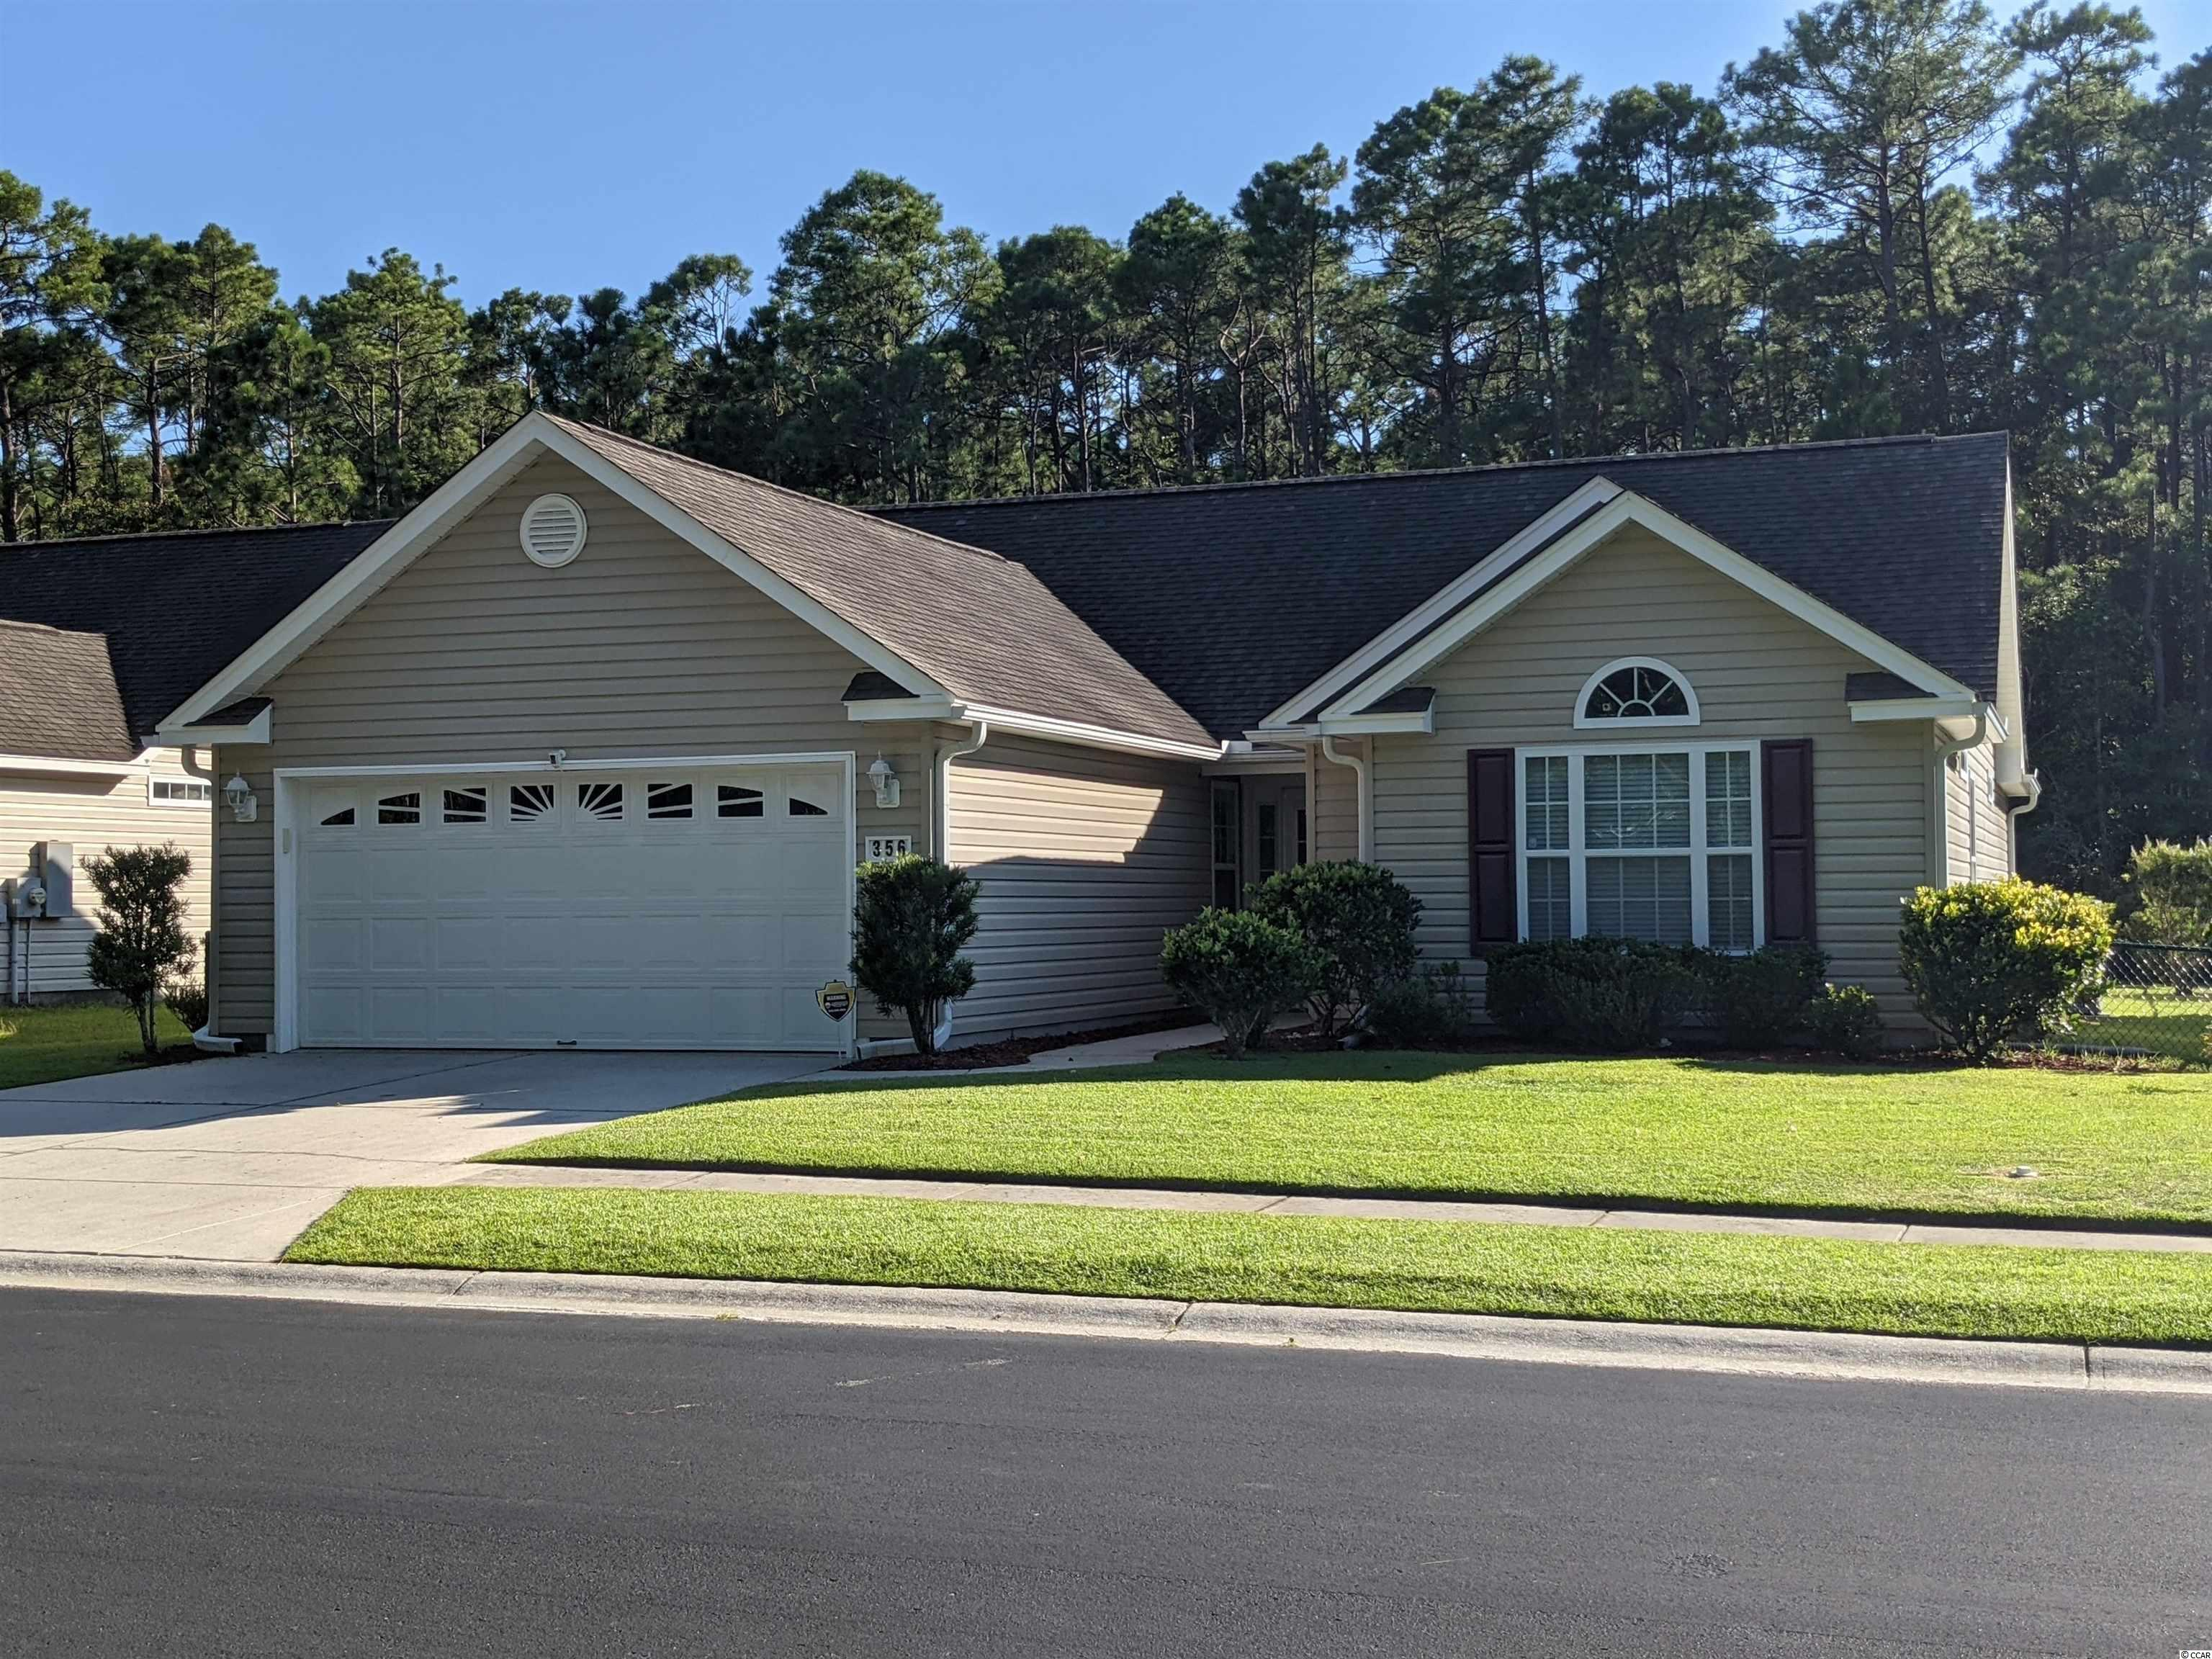 This 3 bedroom, 2 bath home is only a short golf cart ride the beach and a short ride to all Myrtle Beach attractions.  The house is located in a peaceful section of Mallard Landing Village.  This home sits on a spacious lot with plenty of privacy.  The fenced yard backs up to woods and a stream.  The front of the house is located across from a wooded preservation area.  Perfect for bird watching. This freshly painted home has large kitchen, living room, large master bath & 16'x16' master bedroom.  It also features vaulted ceilings, ceiling fans, a large Carolina room and a 3 season Carolina room.  The family style kitchen has plenty of cabinet storage.  The HVAC system was updated in 2017 to an energy efficient system.  The home has a top of the line lawn sprinkler system and wireless alarm system.